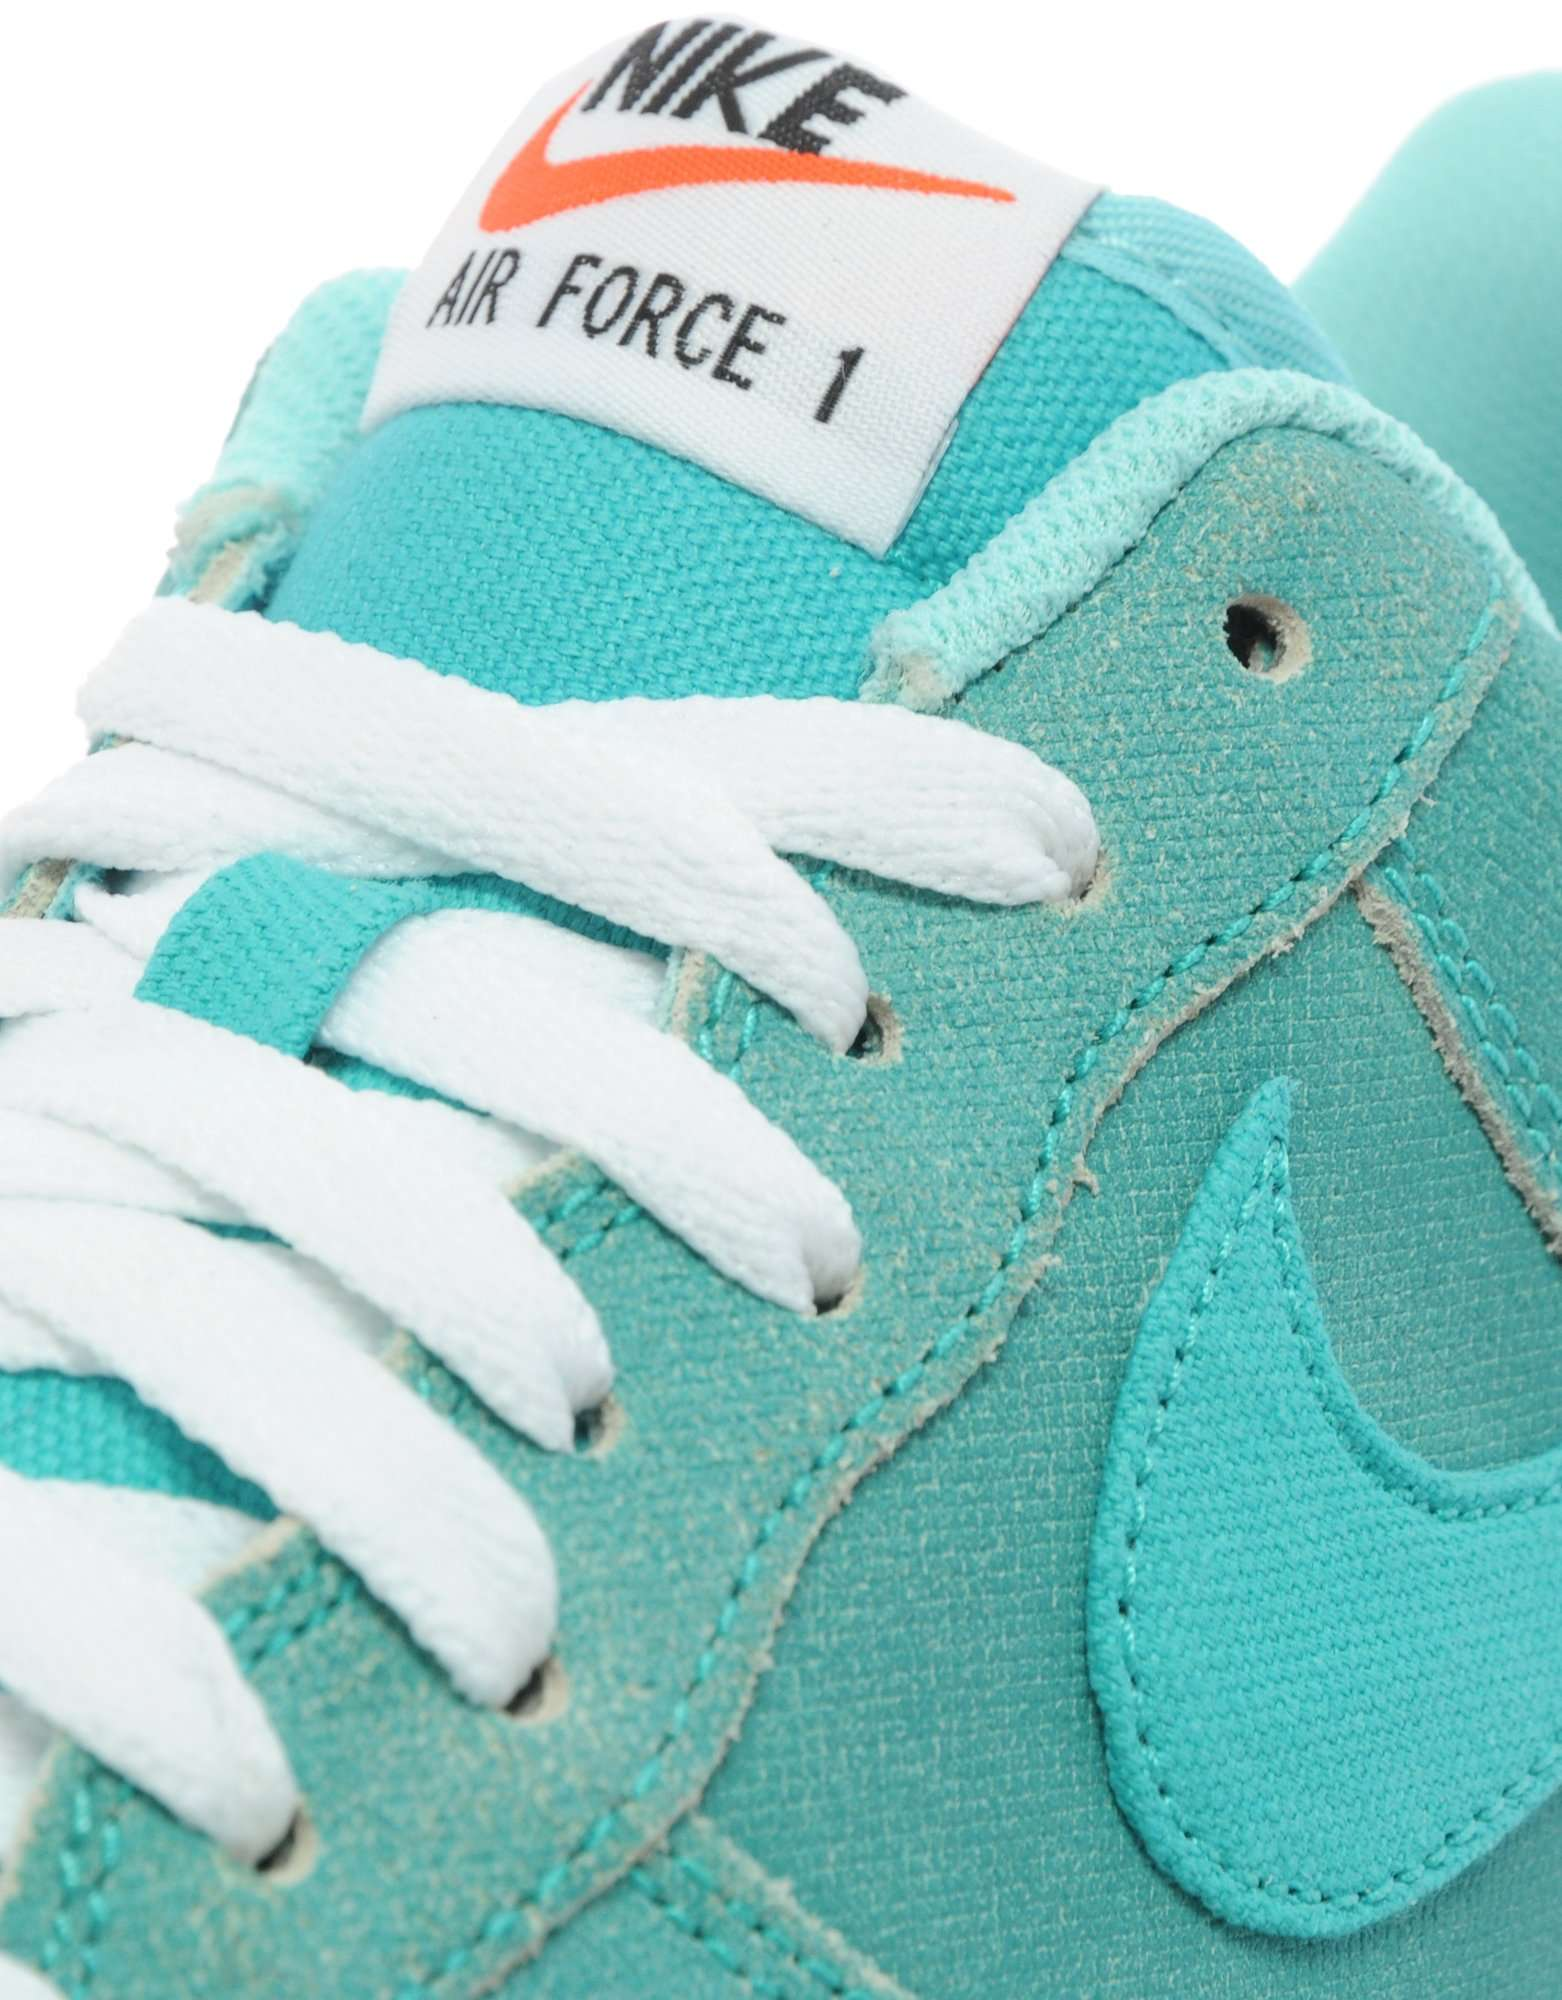 nike air force 1 fit guide